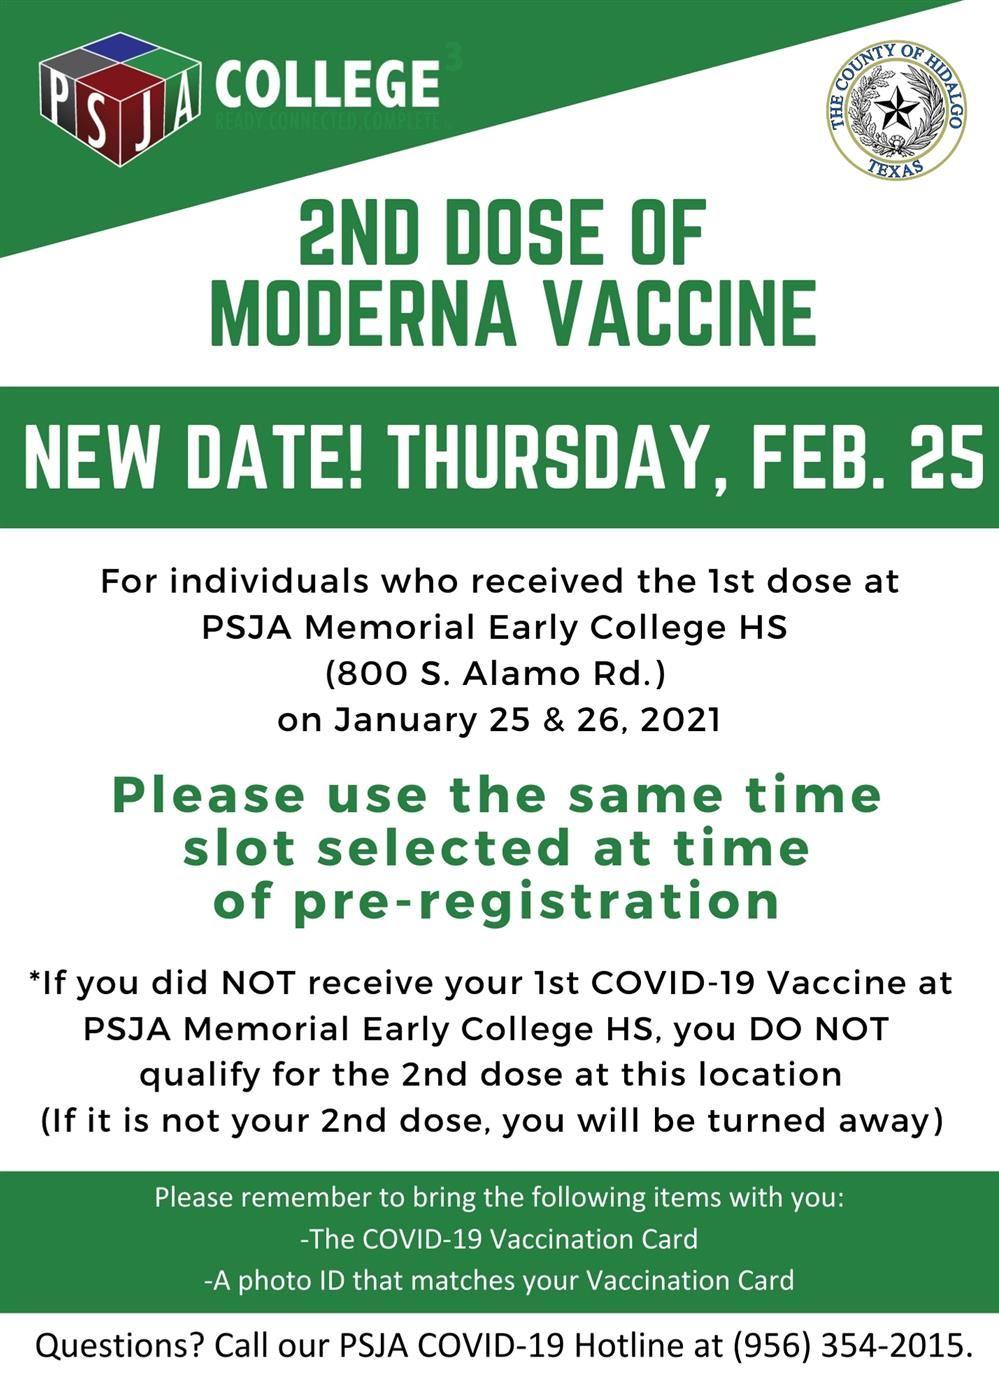 2nd Dose of Moderna Vaccine